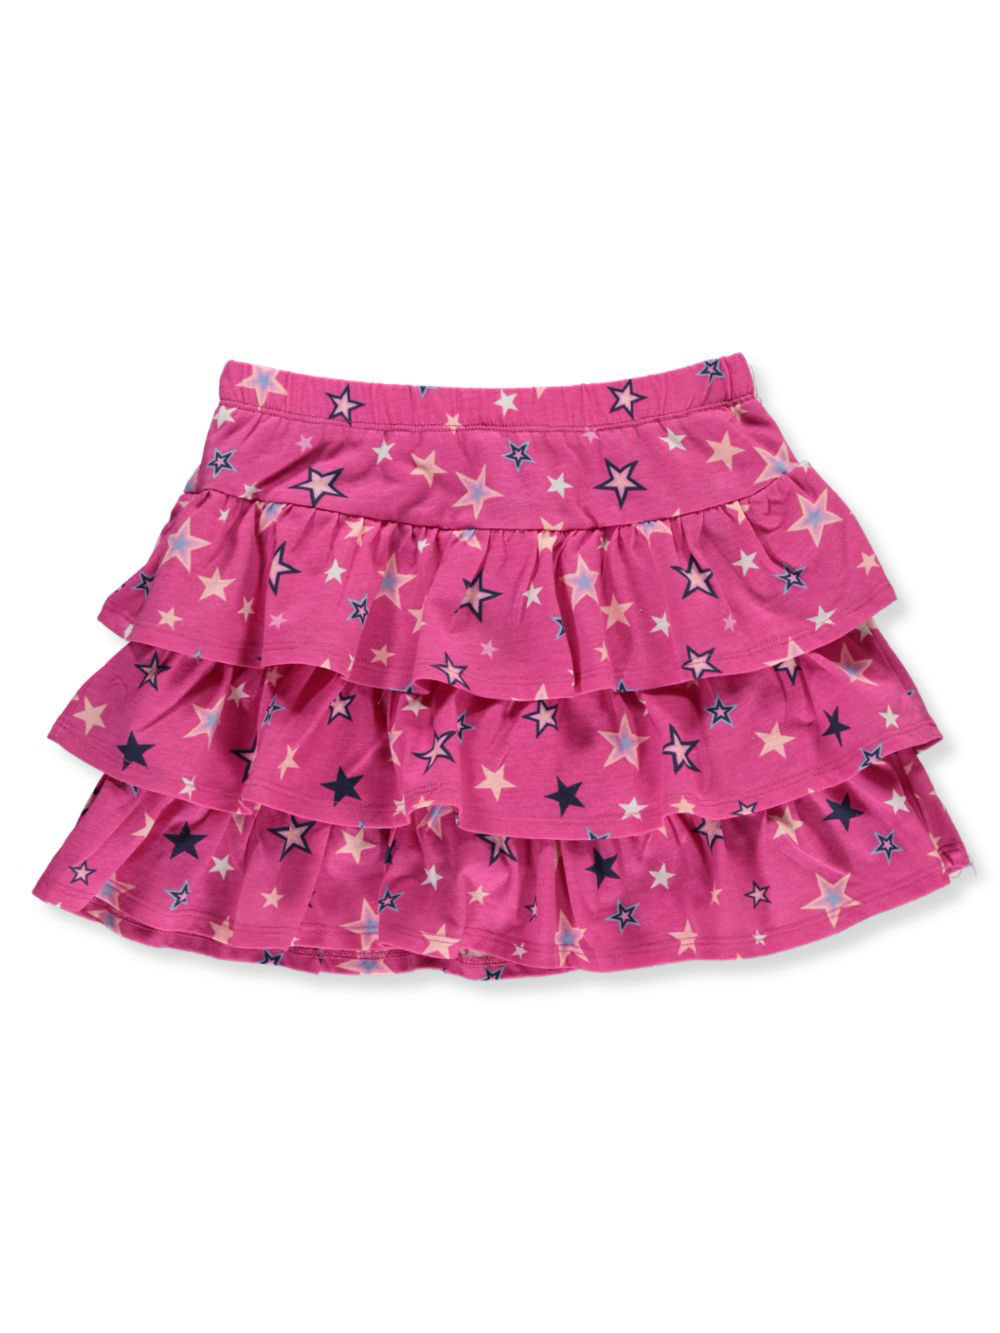 Girls' Tiered Ruffle Skort